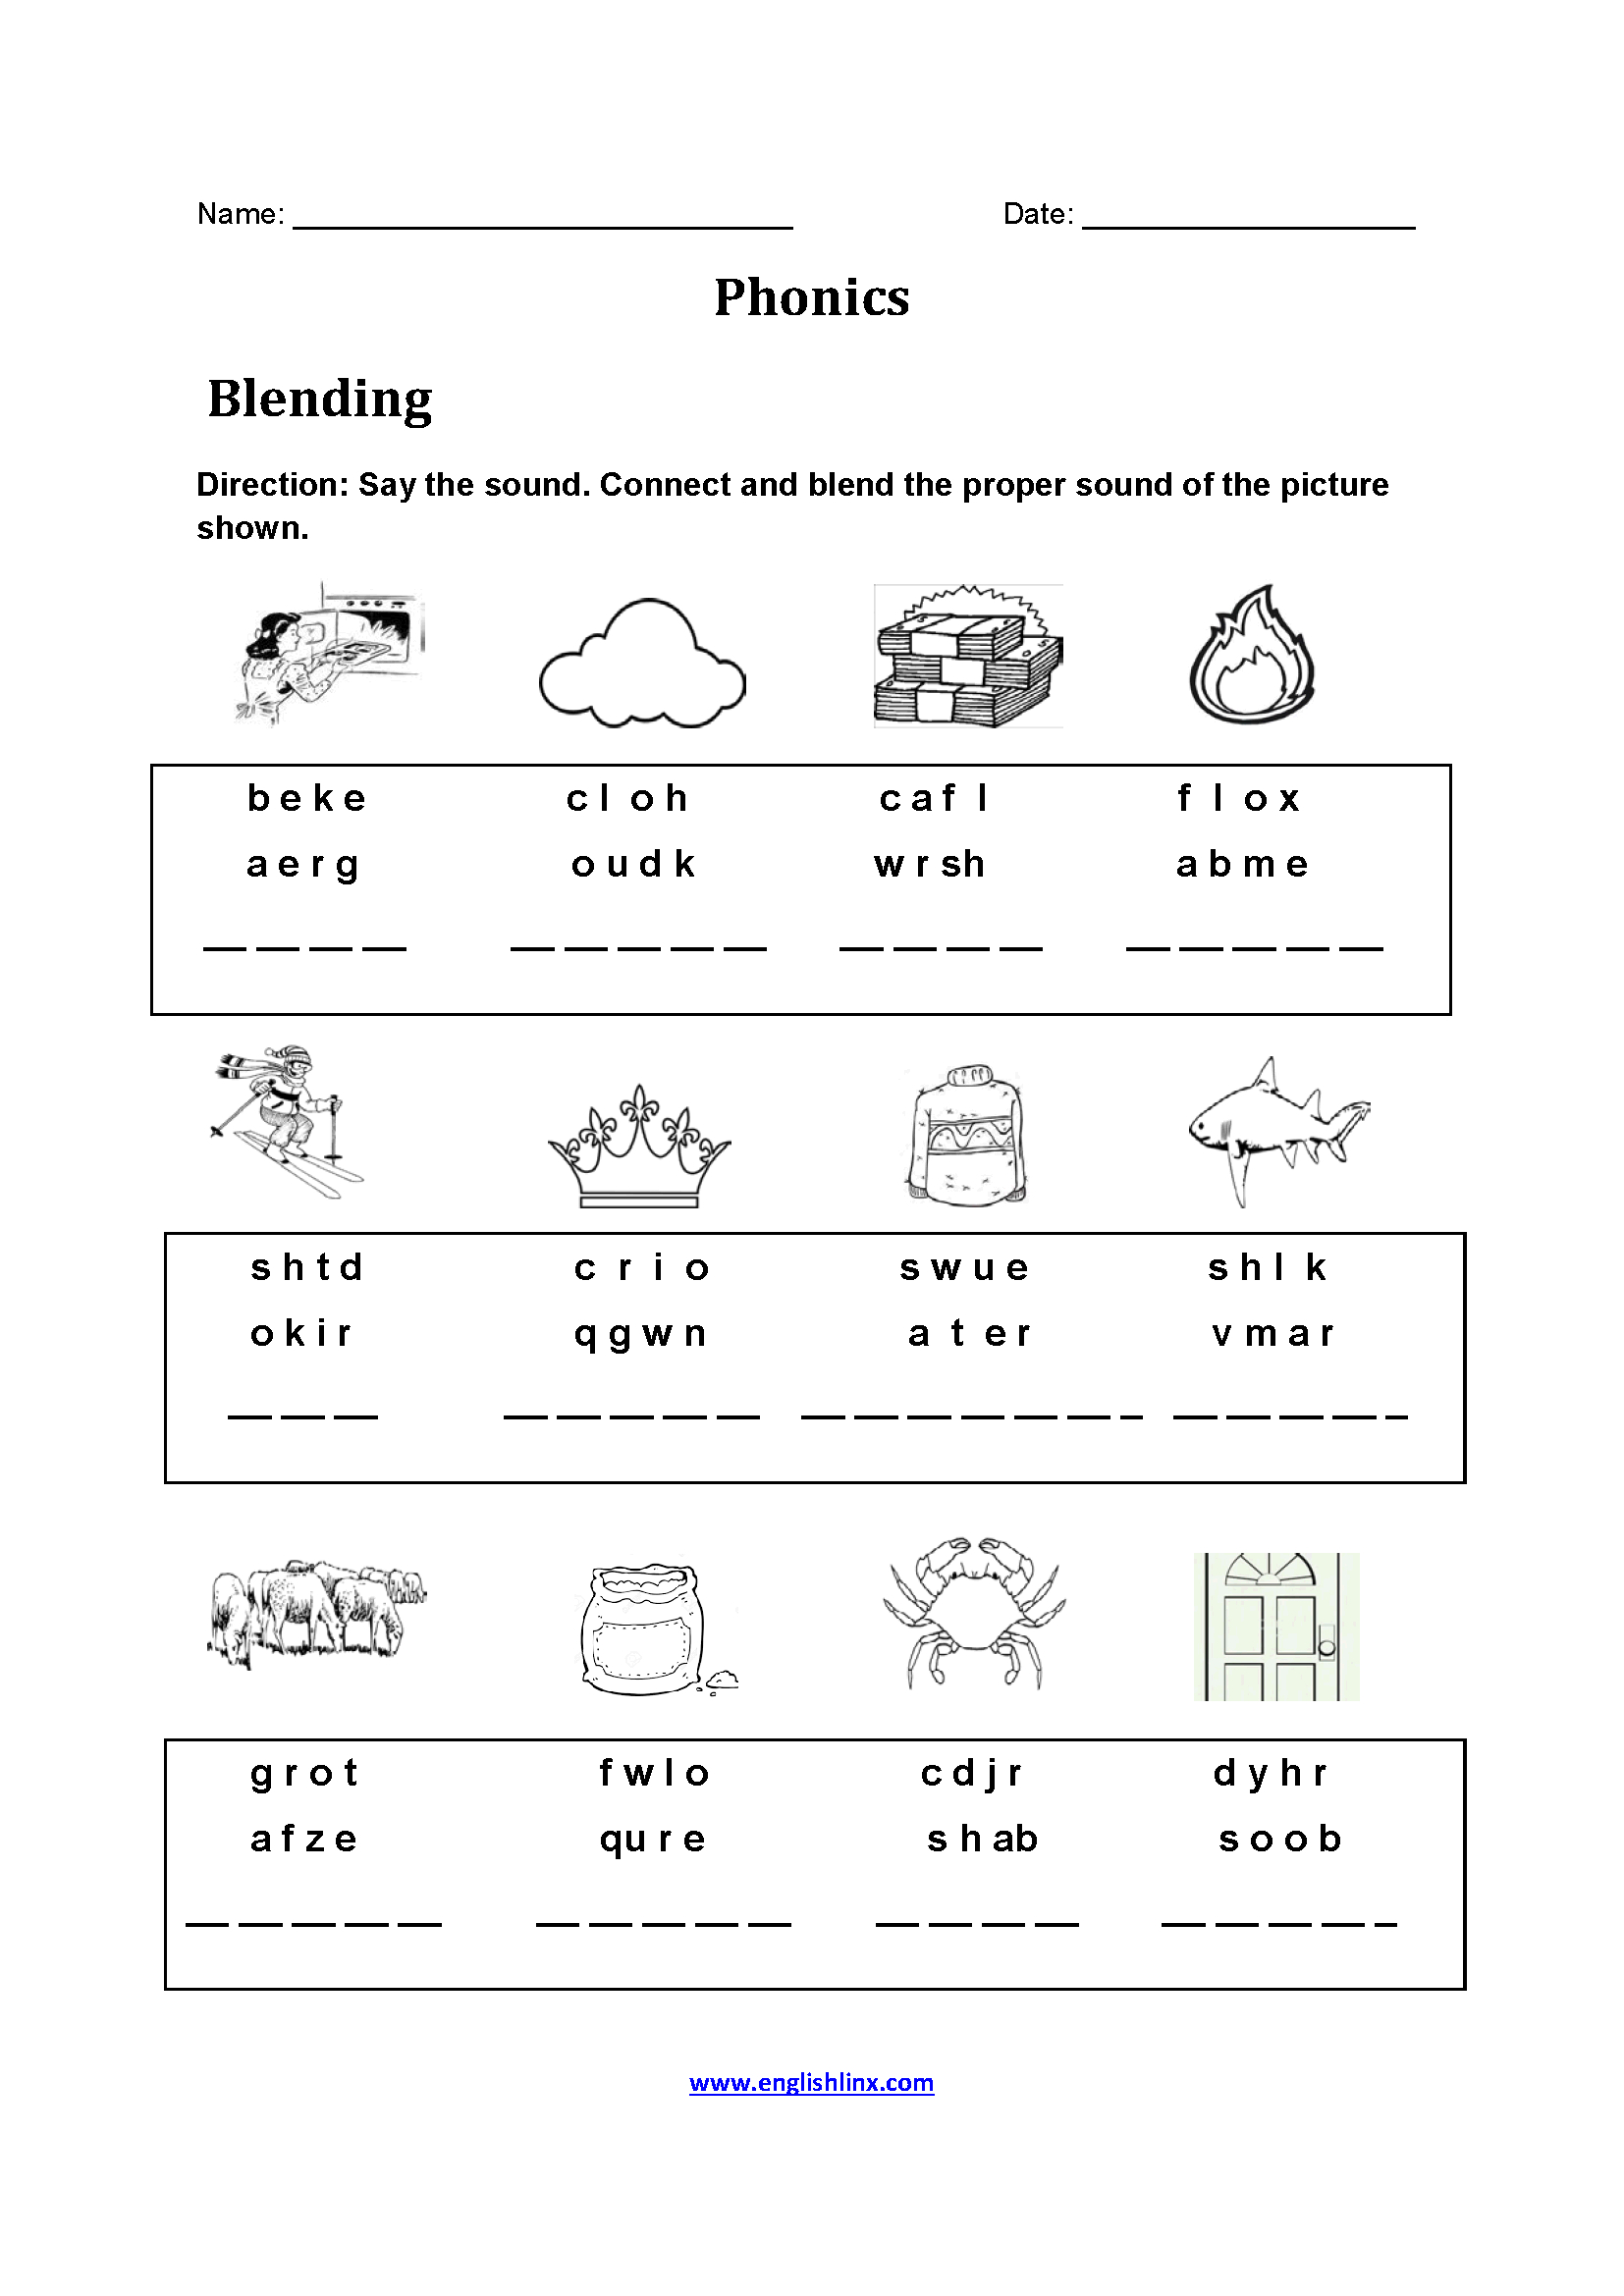 Free Printable Phonics Worksheets For 4Th Grade   Free ...